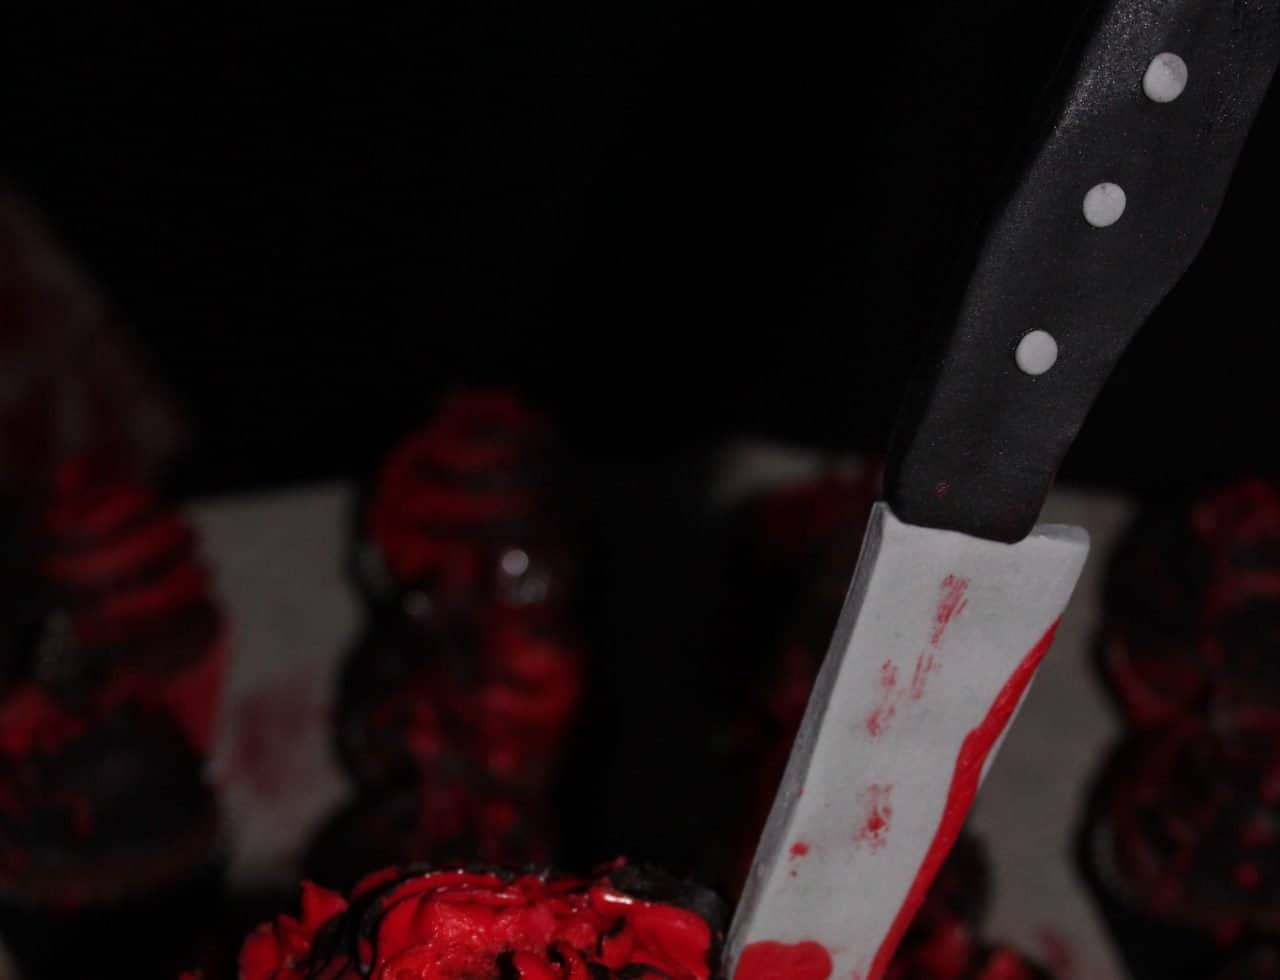 Bespoke Halloween Prop decoration we used to complete the Halloween venue dressing service for our Horror themed event.